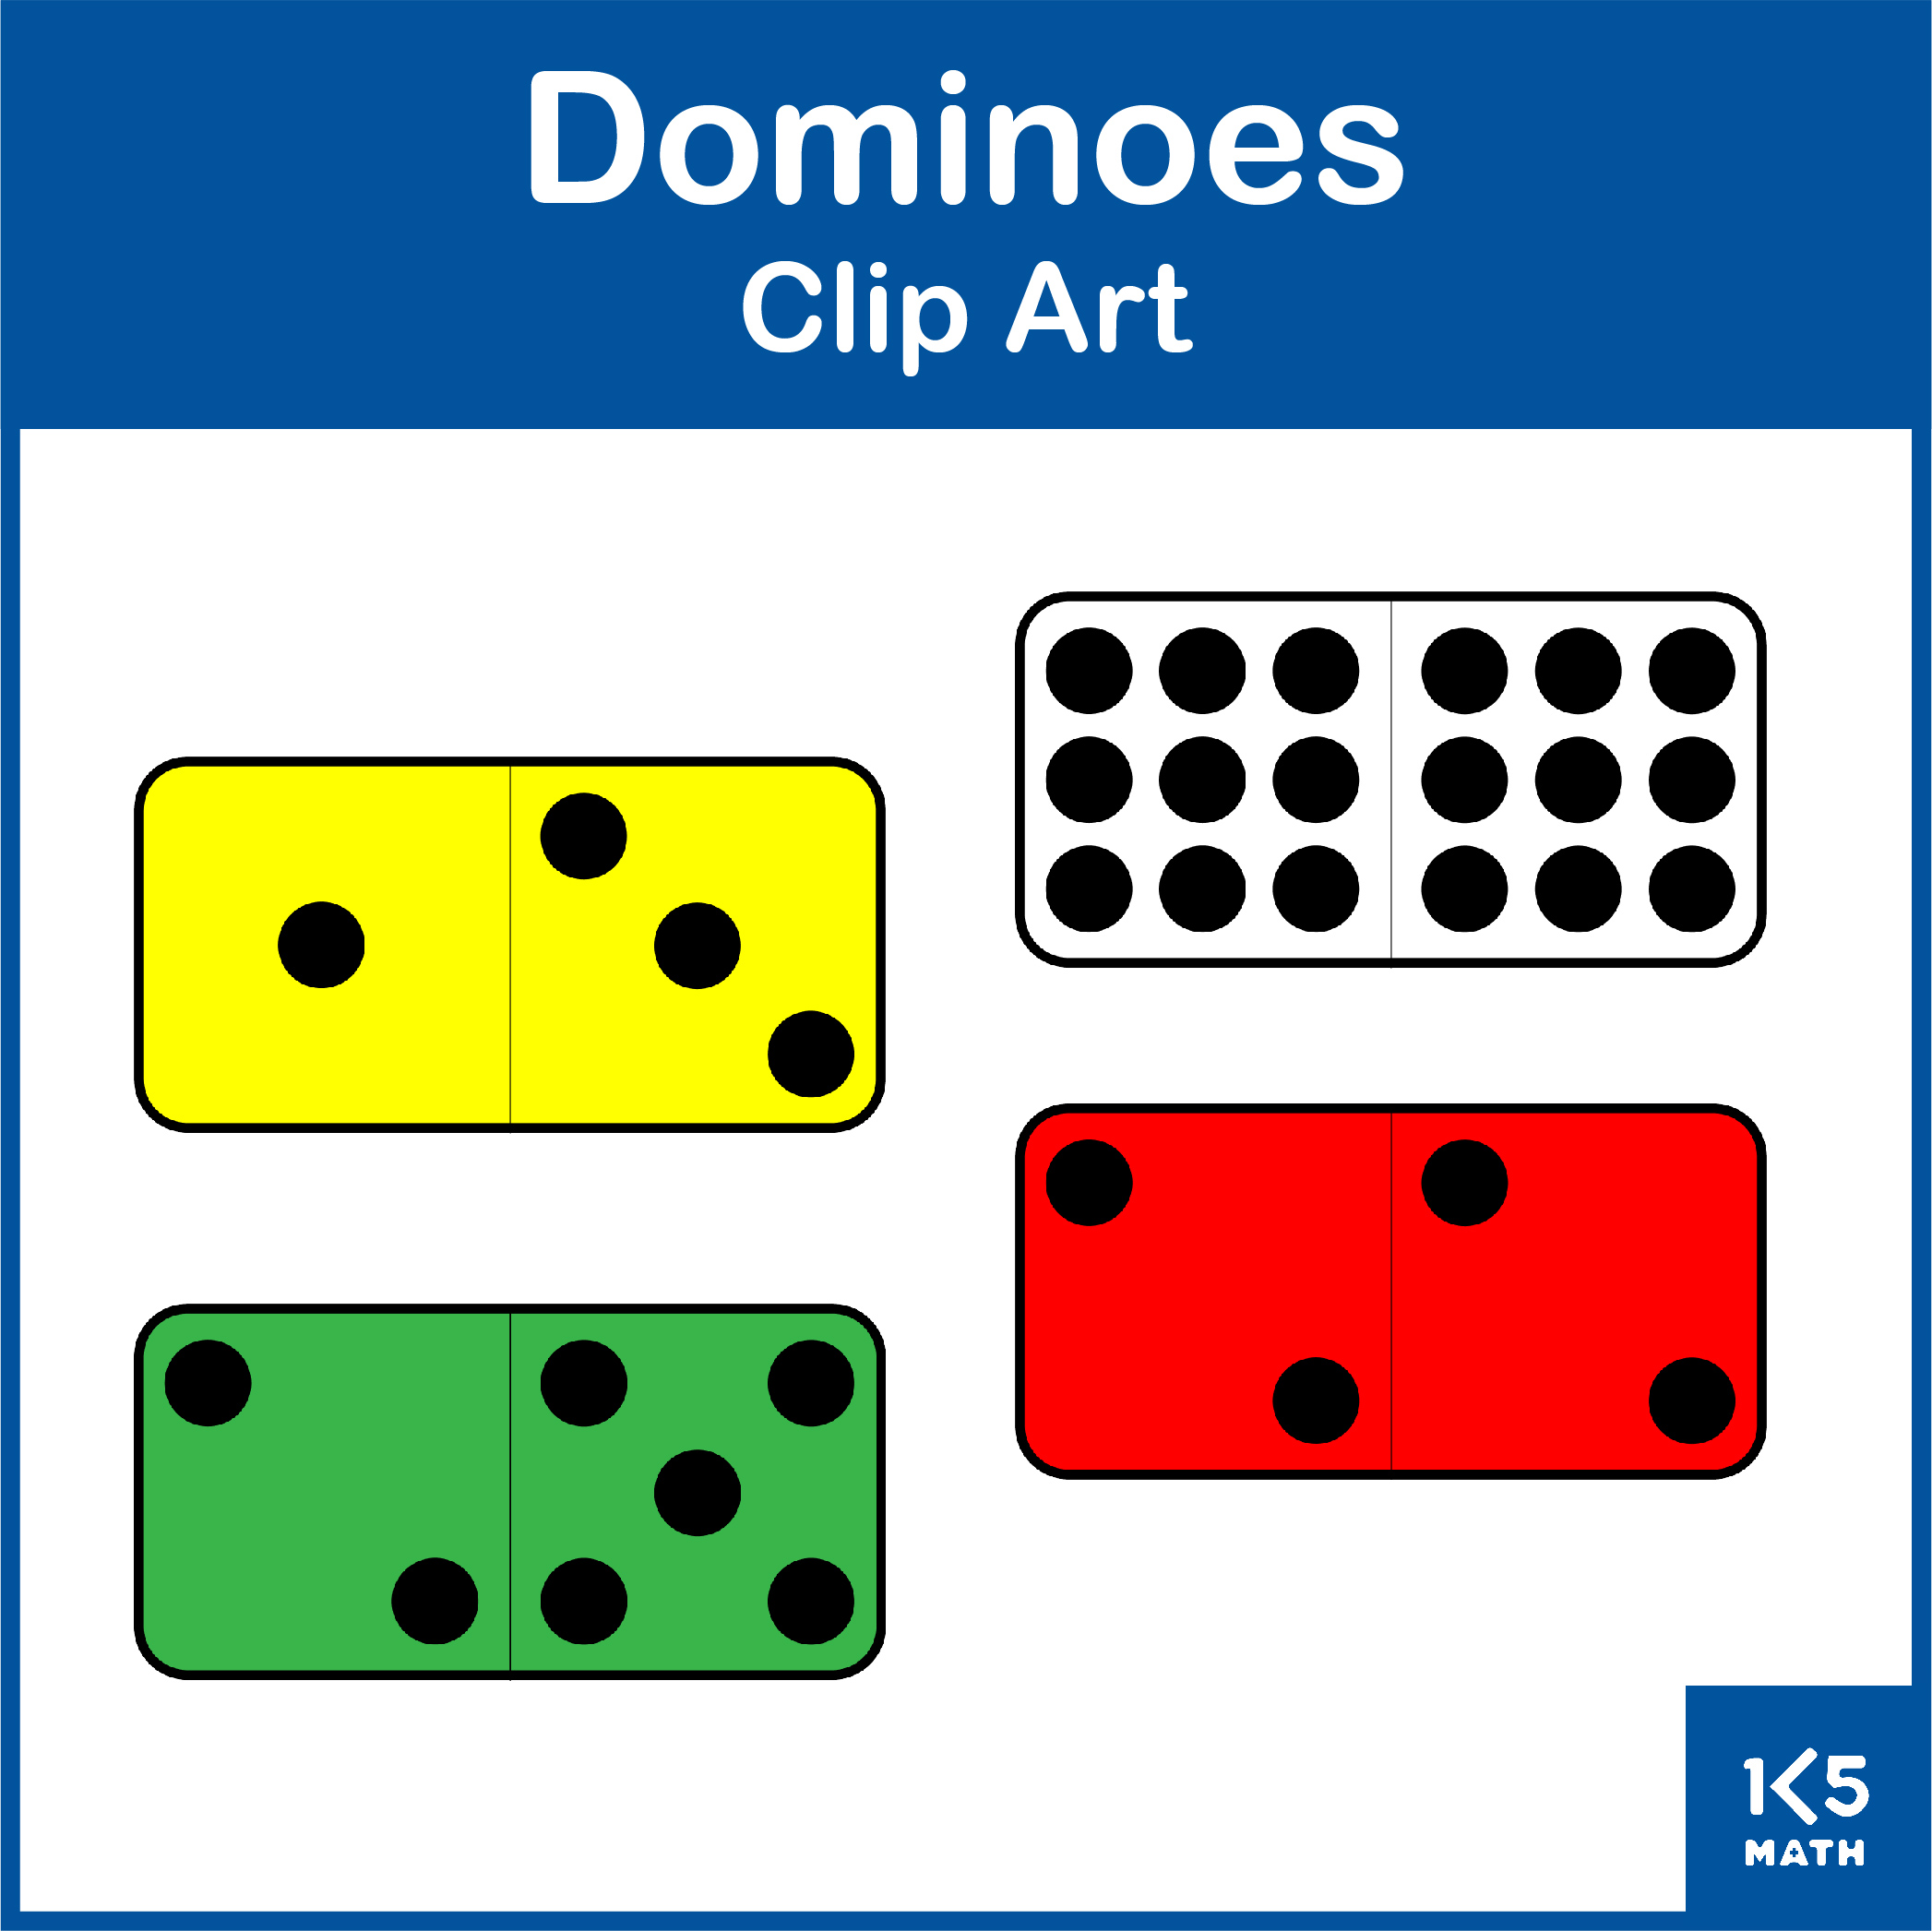 Dominoes Clip Art